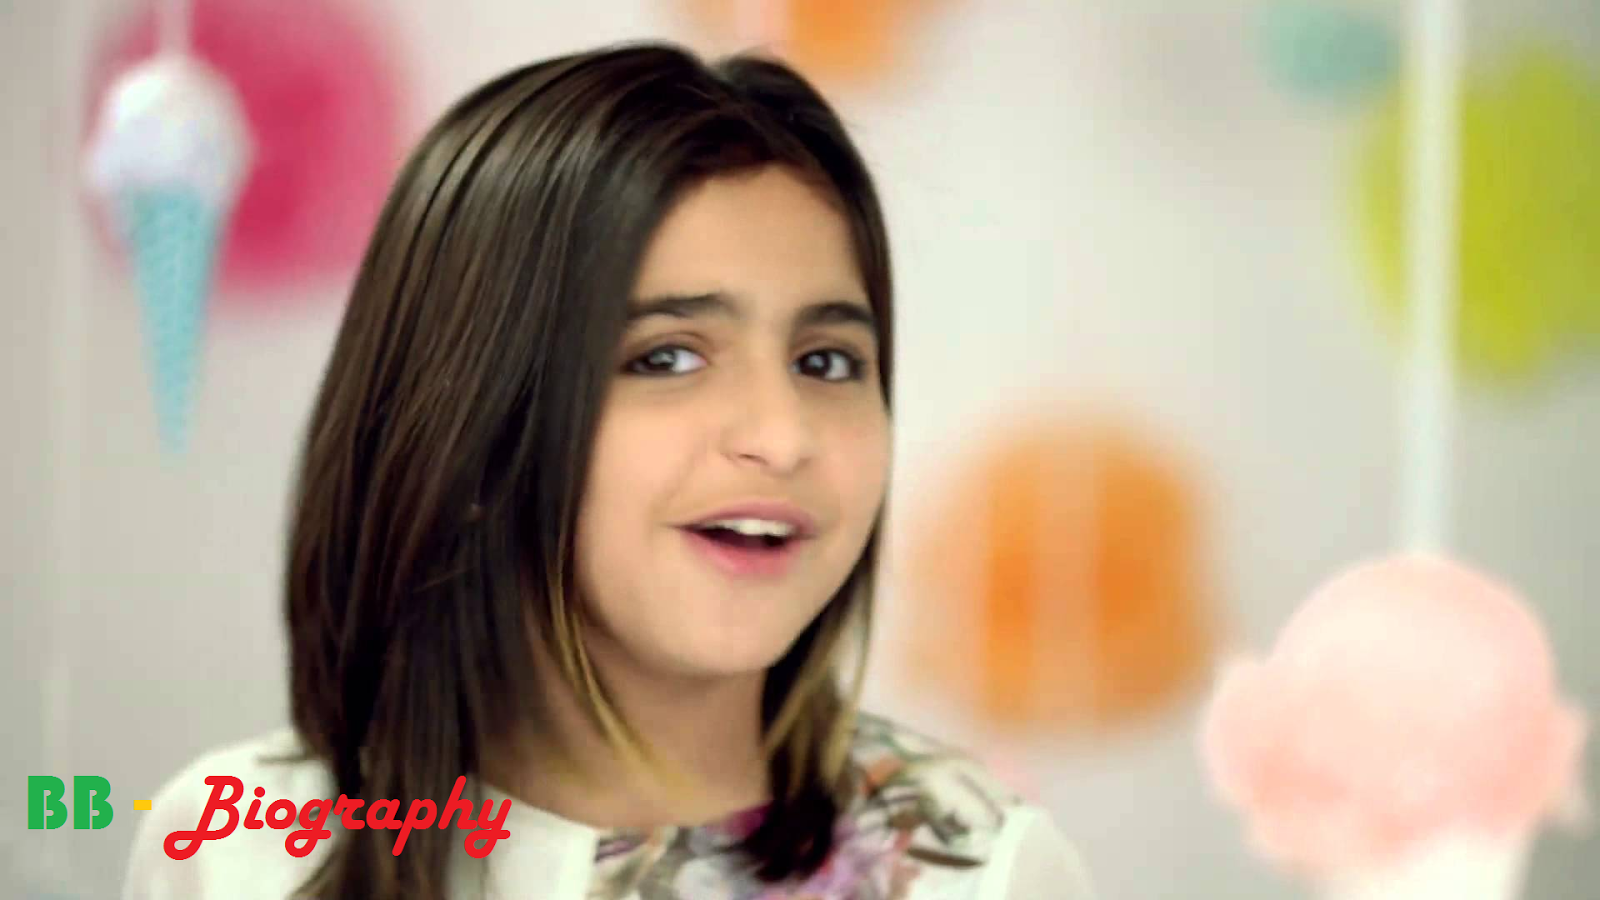 Profil And Biography Of Hala Al Turk Profil And Biography